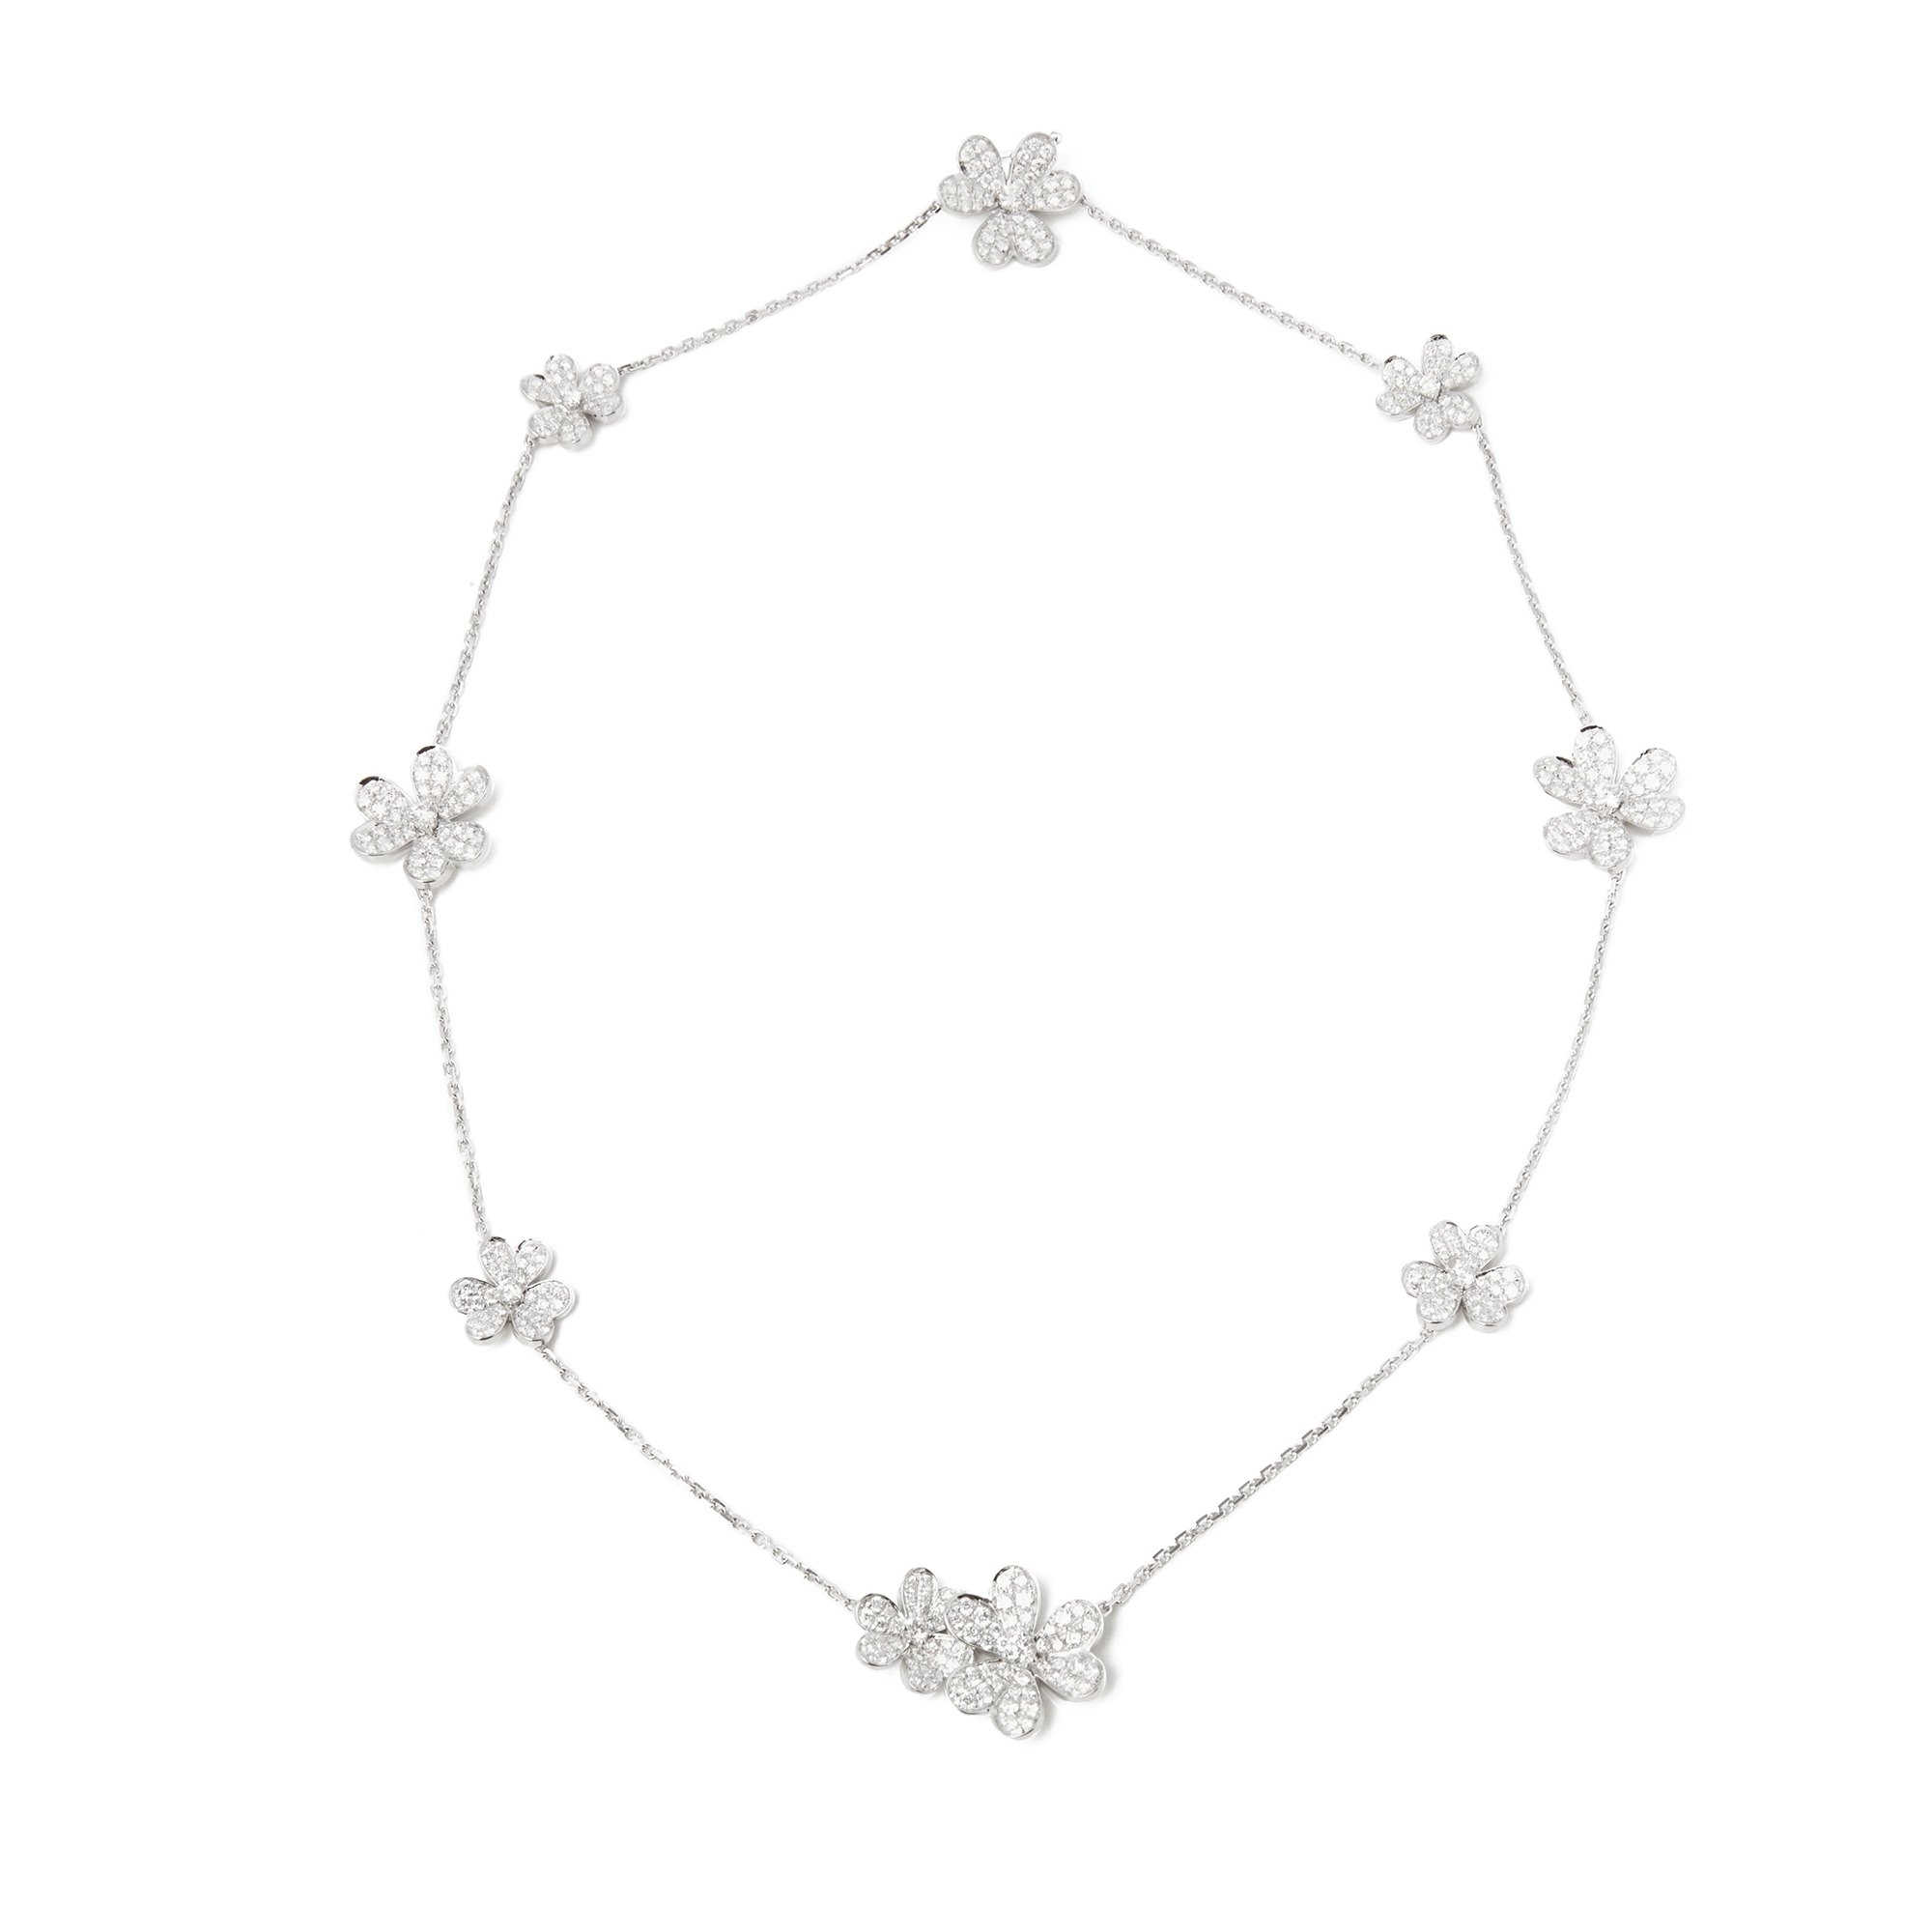 Van Cleef & Arpels 18k White Gold Diamond 9 Flower Frivole Necklace